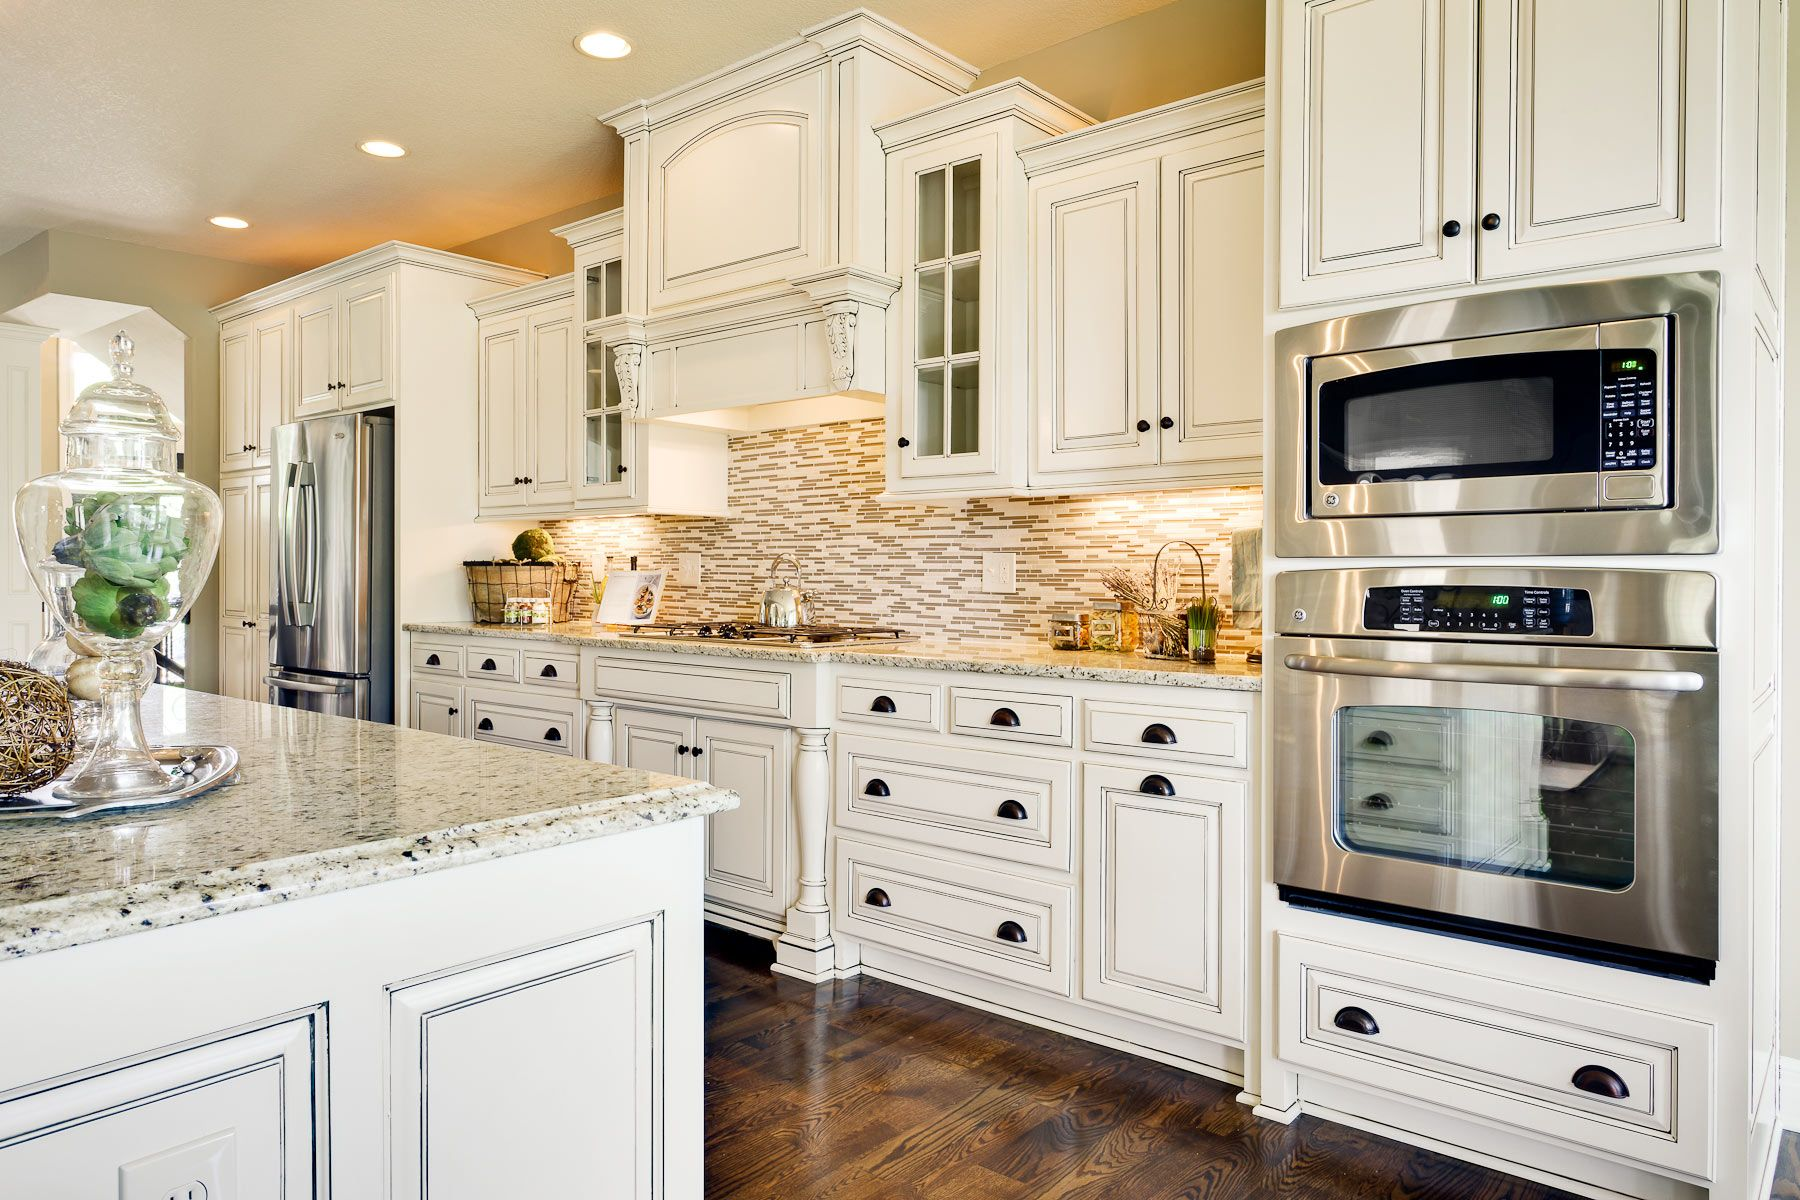 White Kitchen Cabinets Off White Kitchen Cabinets White Kitchen Cabinets With Granite Paint Kitchen Cabinets White White Kitchen Cabinets With Granite Antique White Kitchen White Kitchen Design White Kitchen Interior